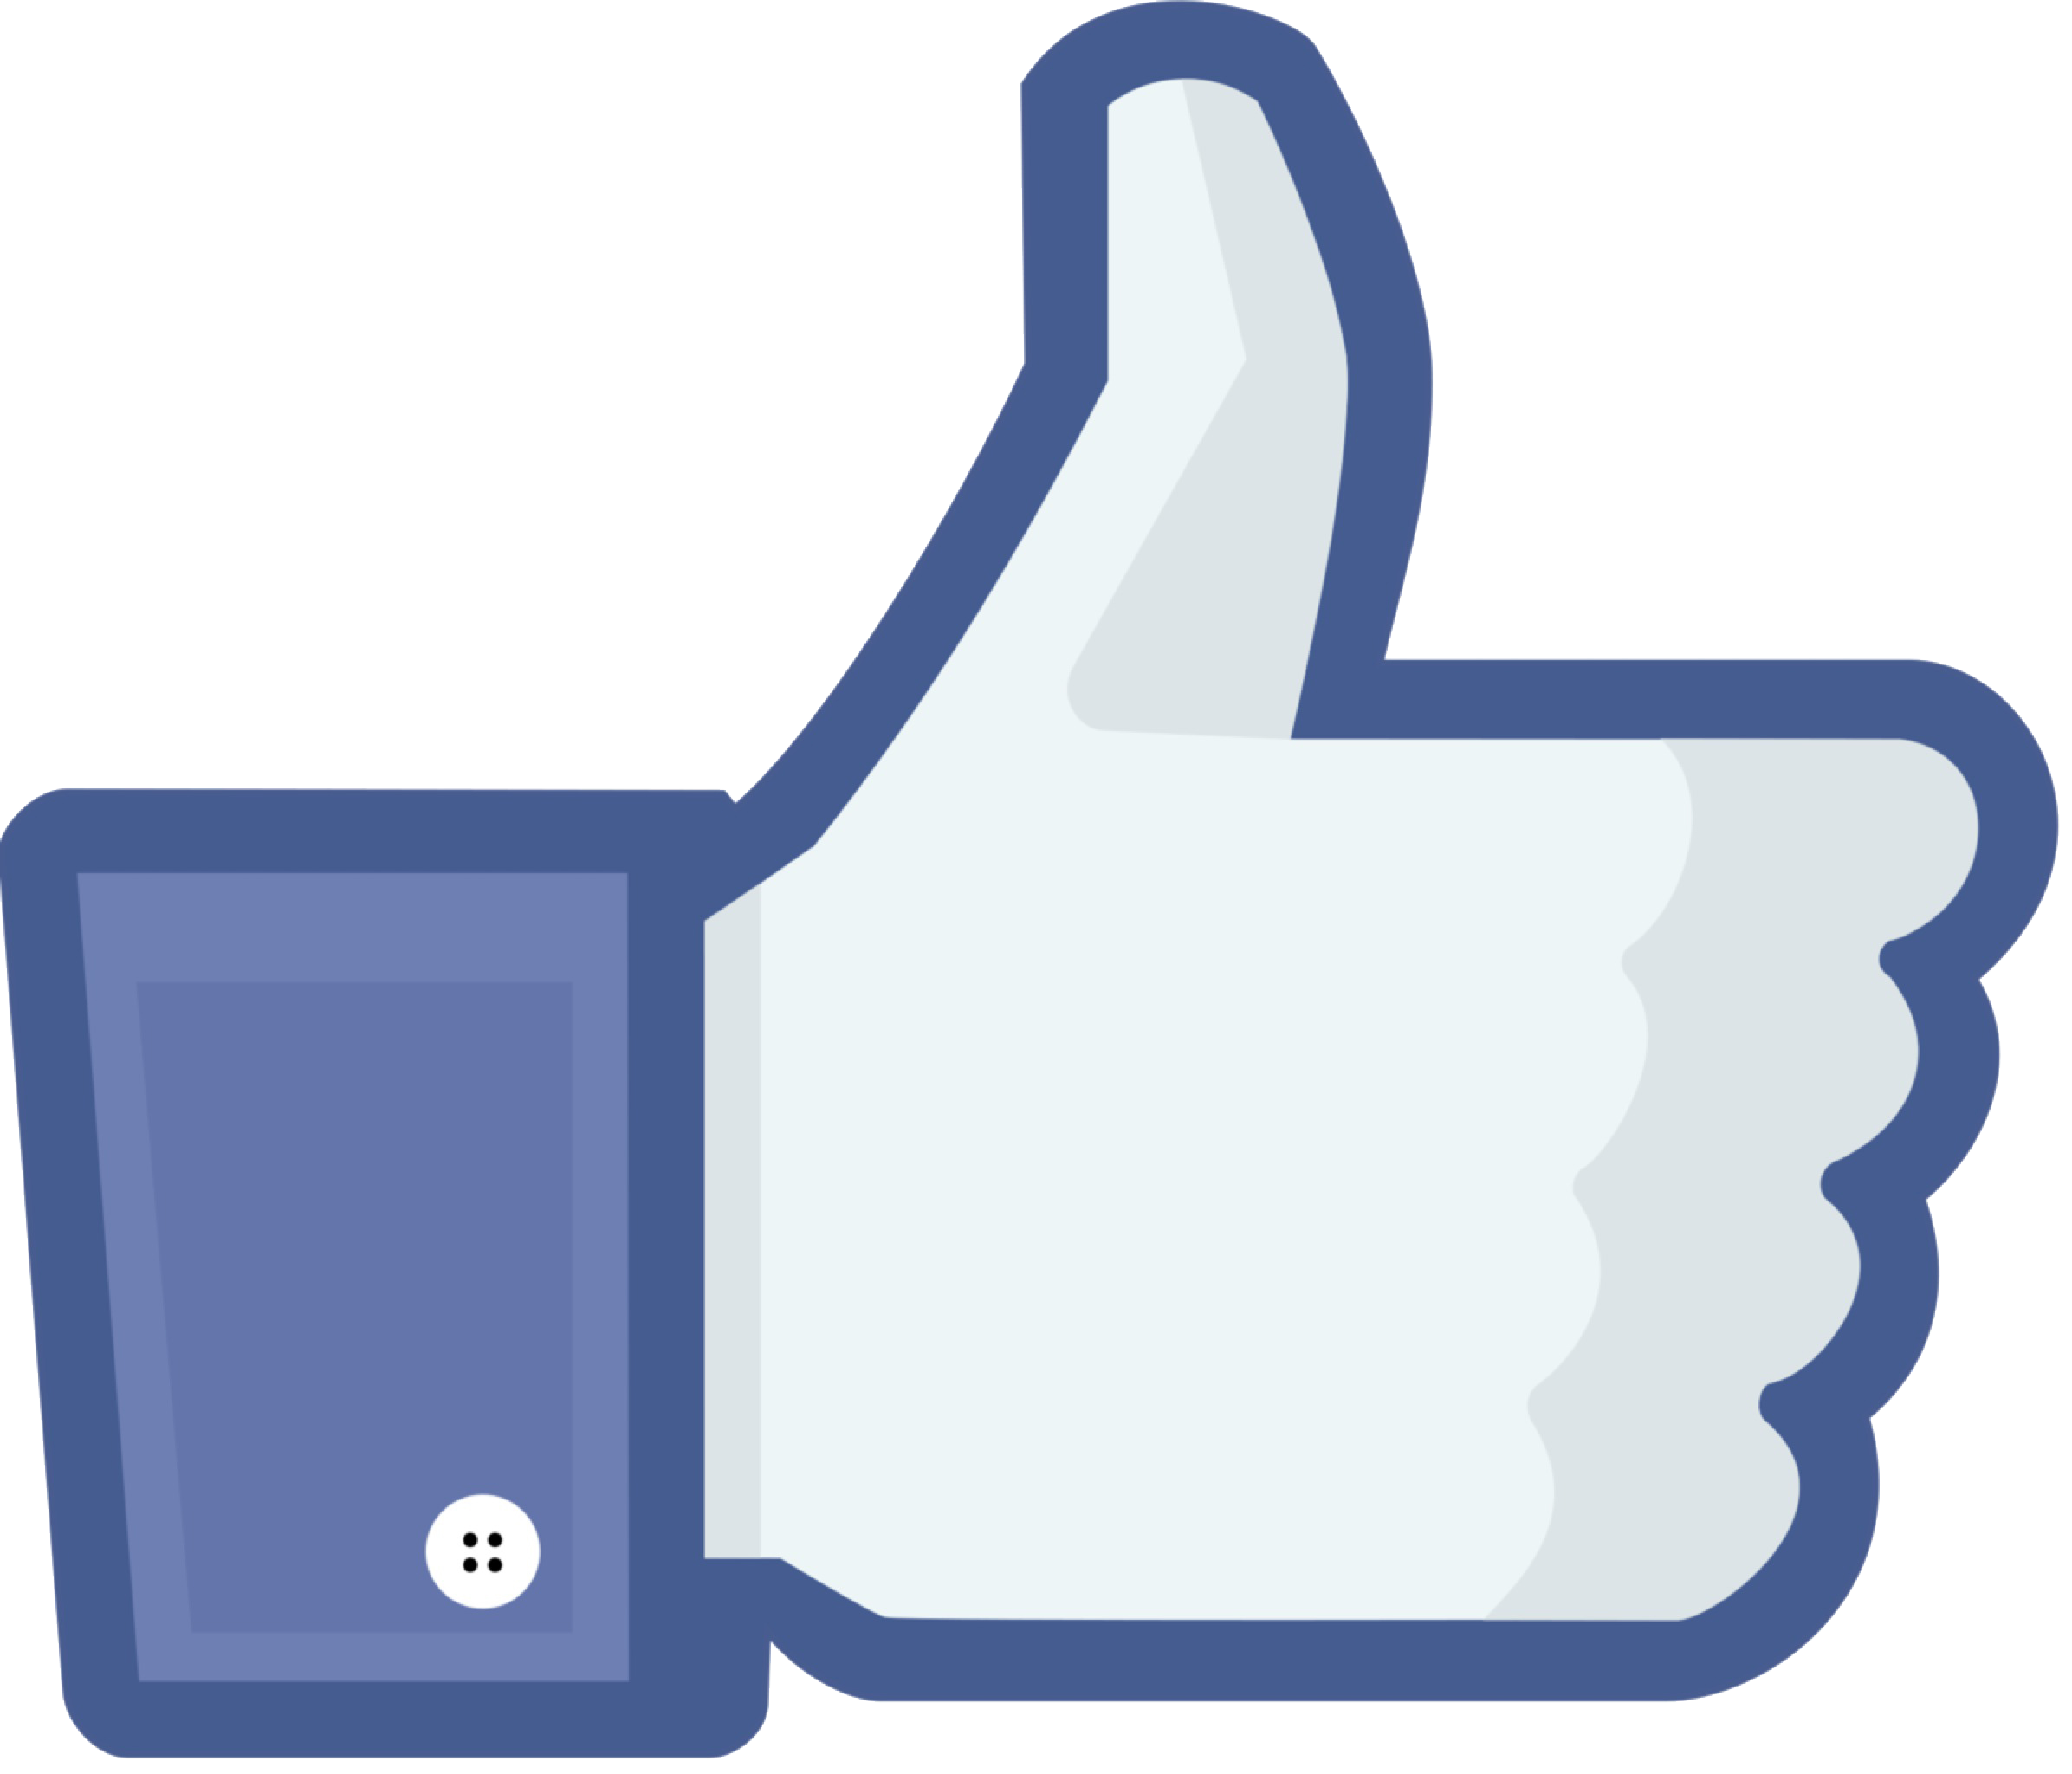 Clipart like facebook image freeuse library Facebook Like Png Clipart image freeuse library